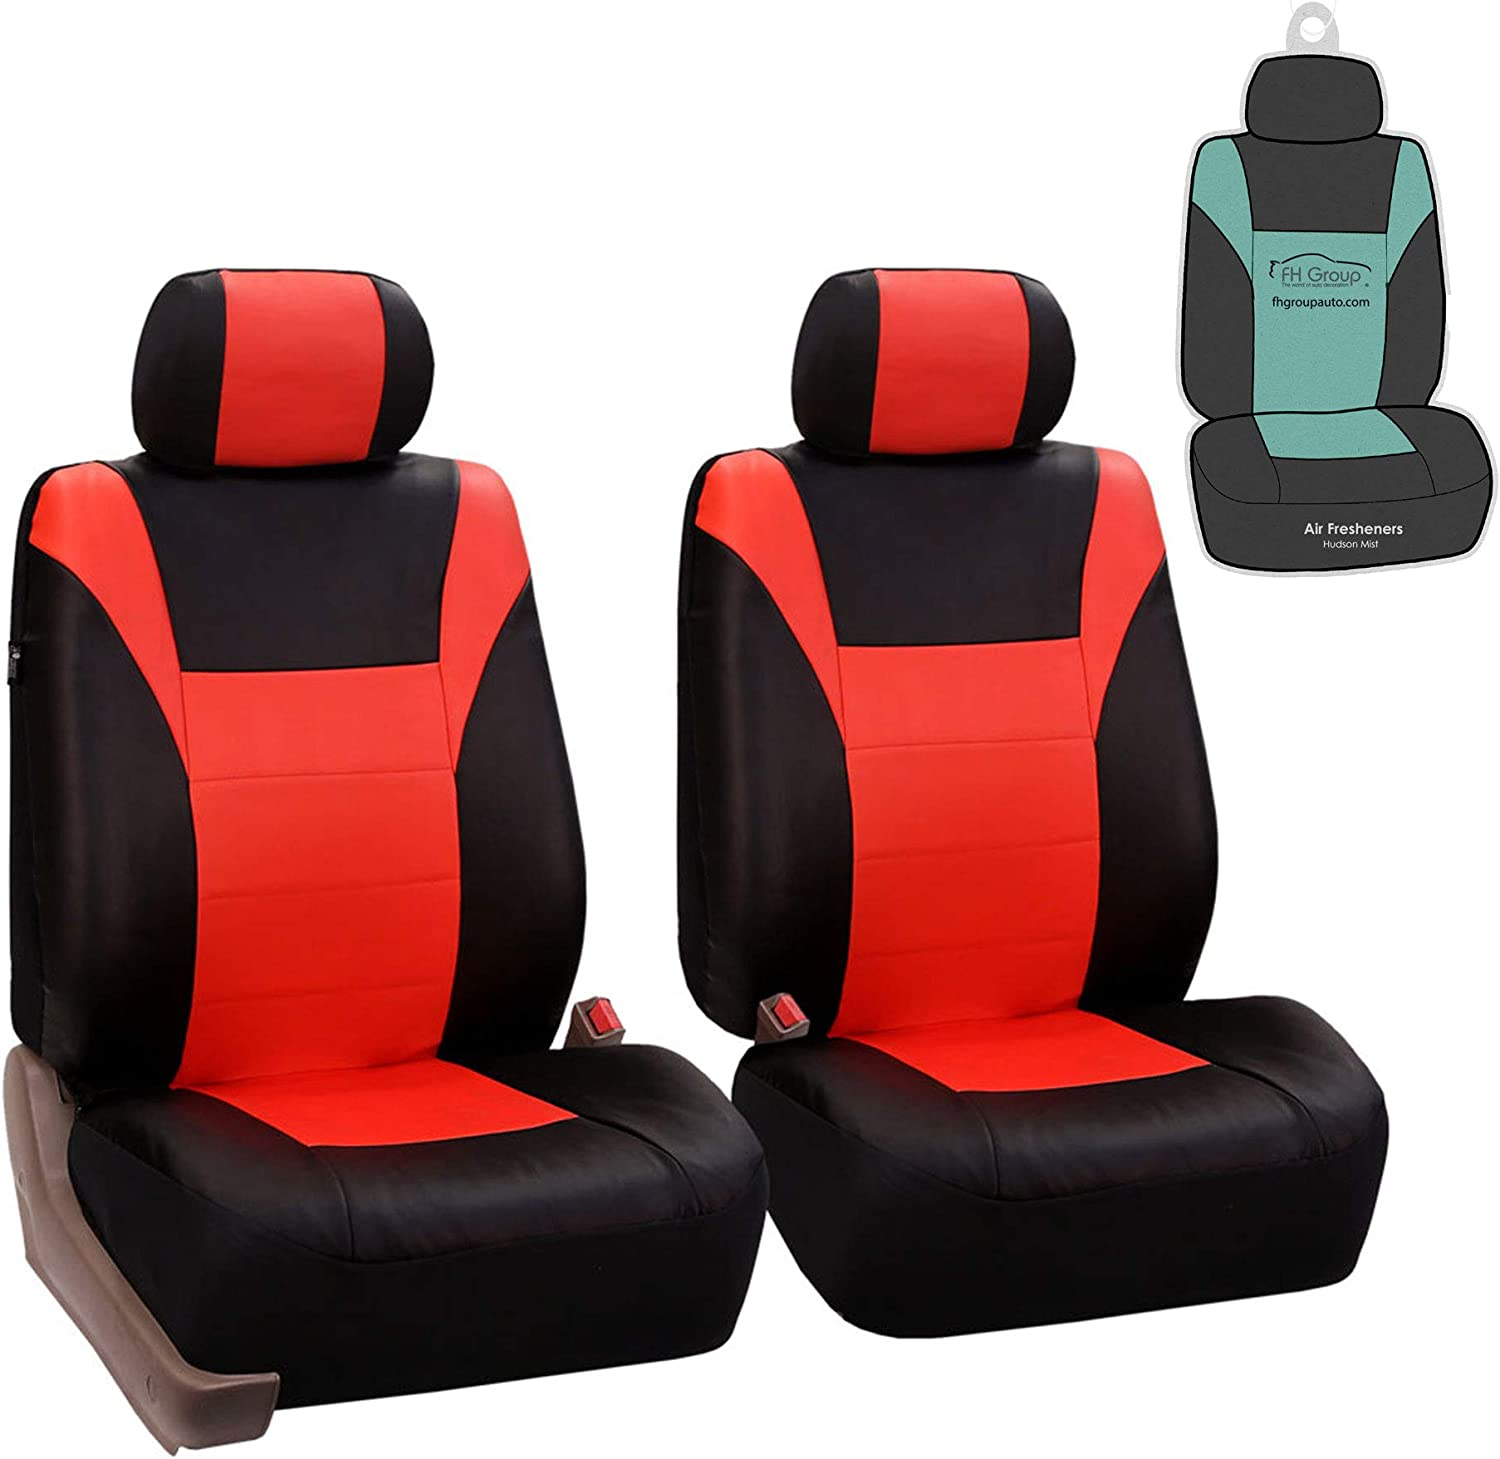 FH Group PU003102 Race Car Inspired PU Leather Seat Covers (Tangerine) Front Set - Universal Fit